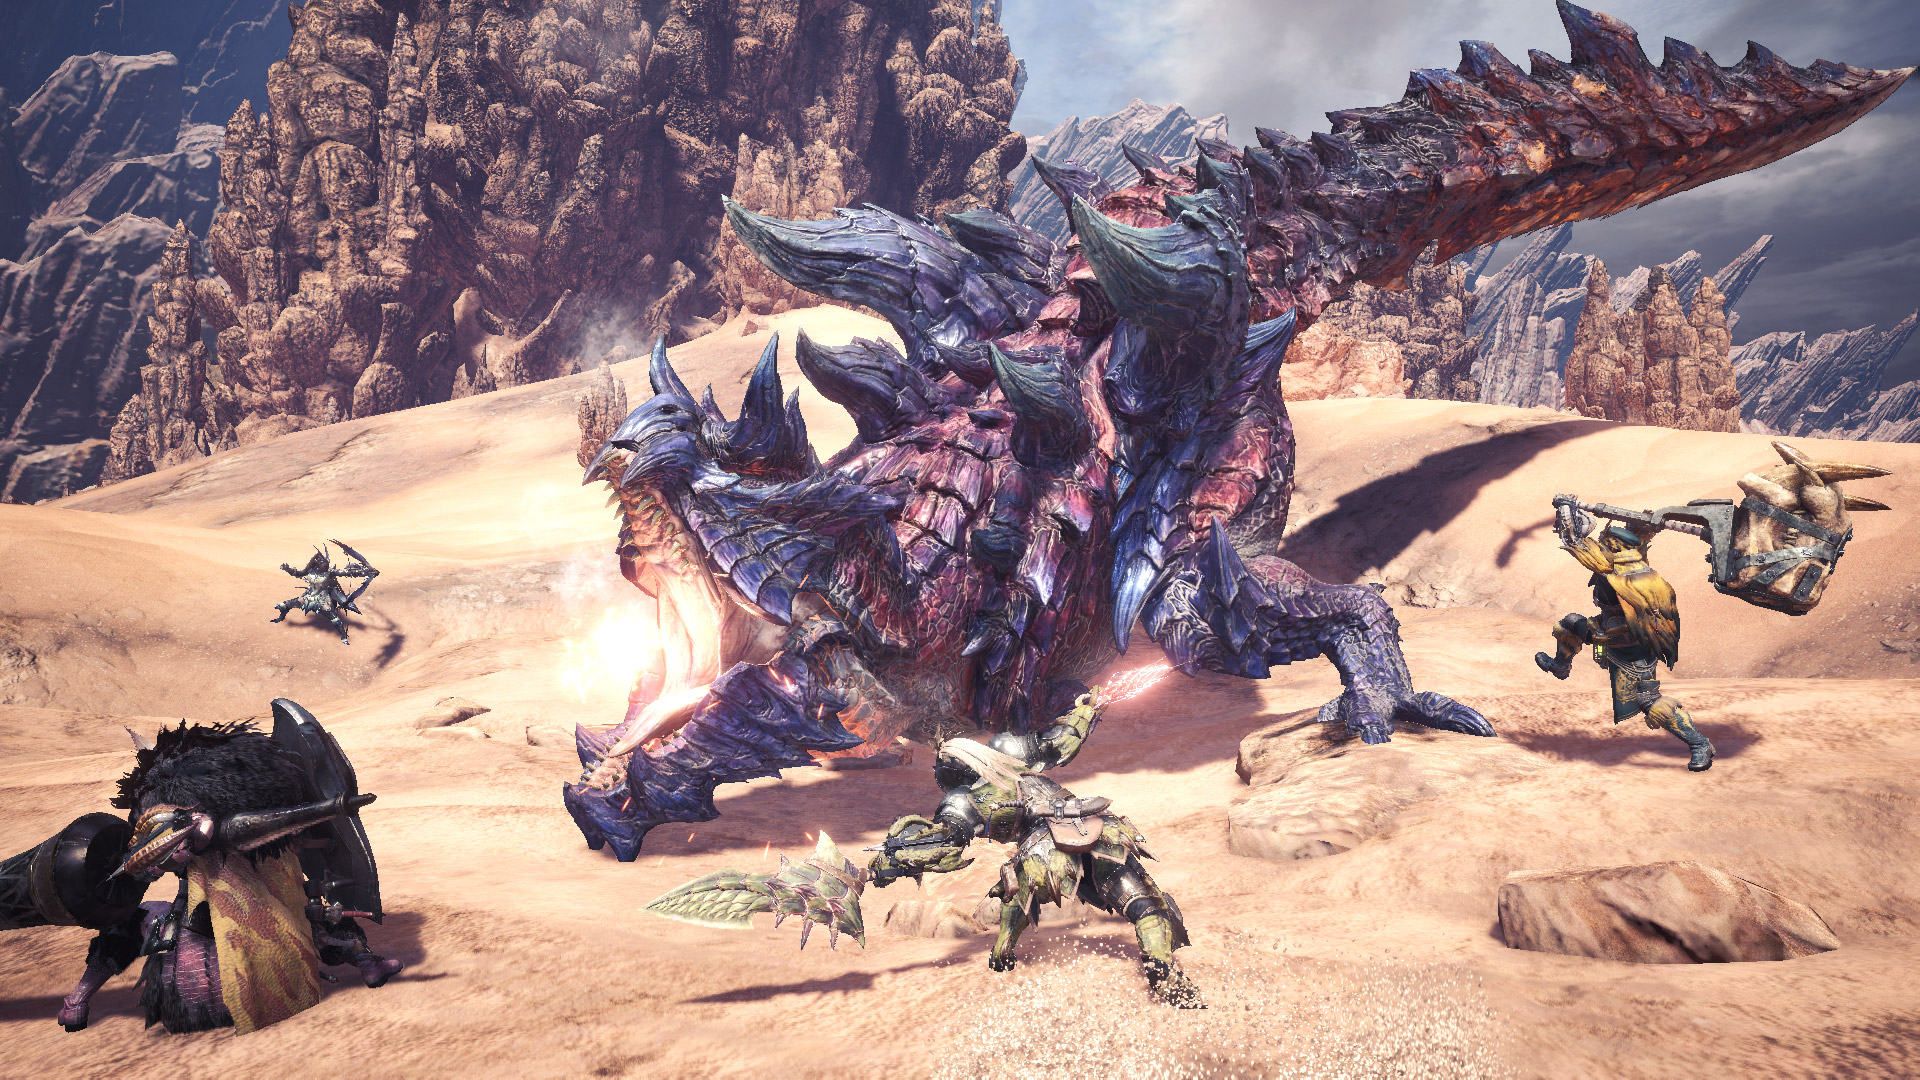 Glavenus returns in Monster Hunter World: Iceborne